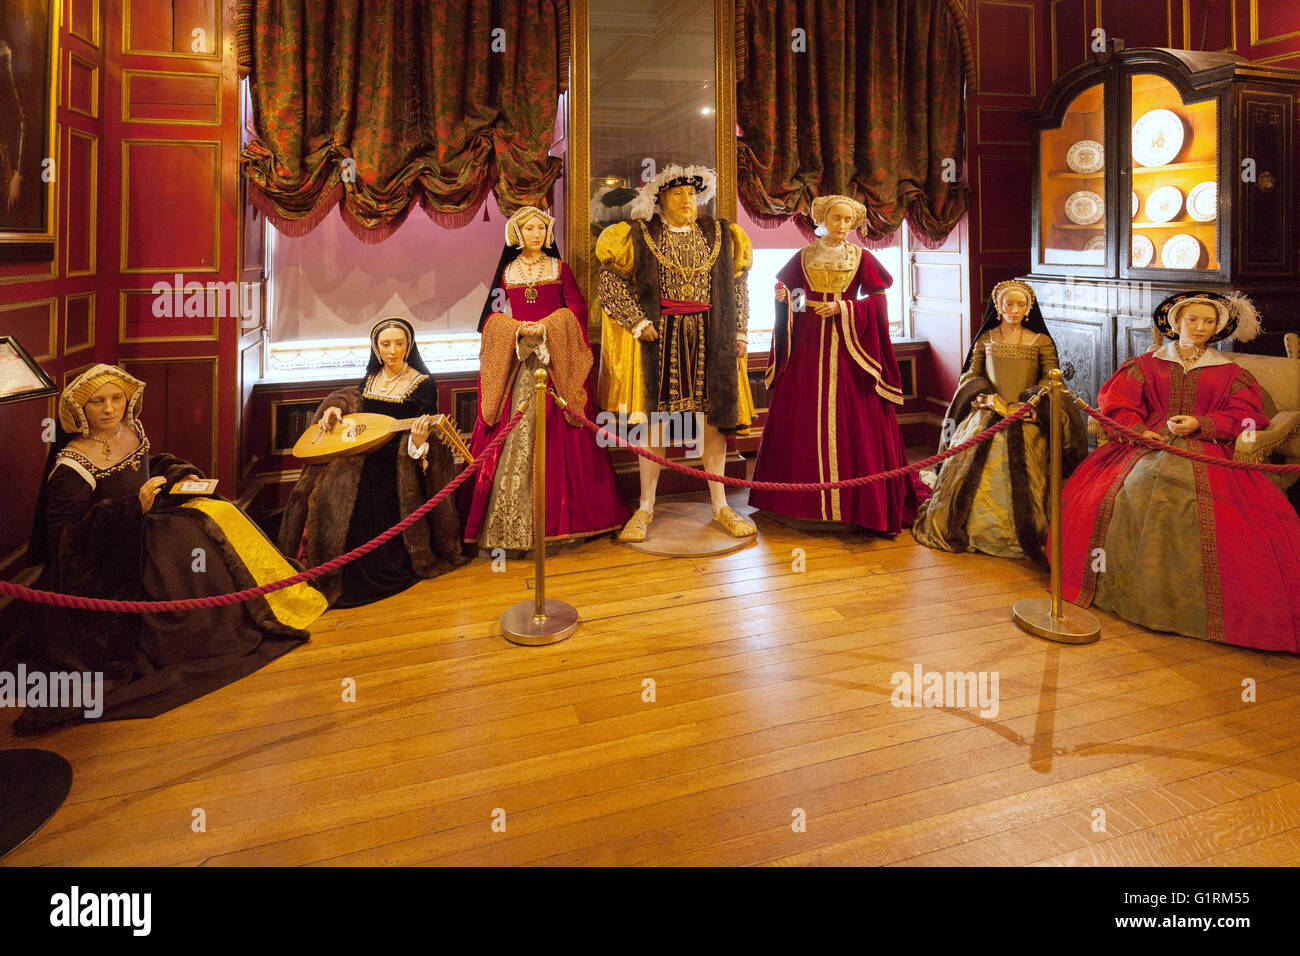 King Henry viii and his six wives, waxworks at Warwick Castle, Warwick, England UK - Stock Image